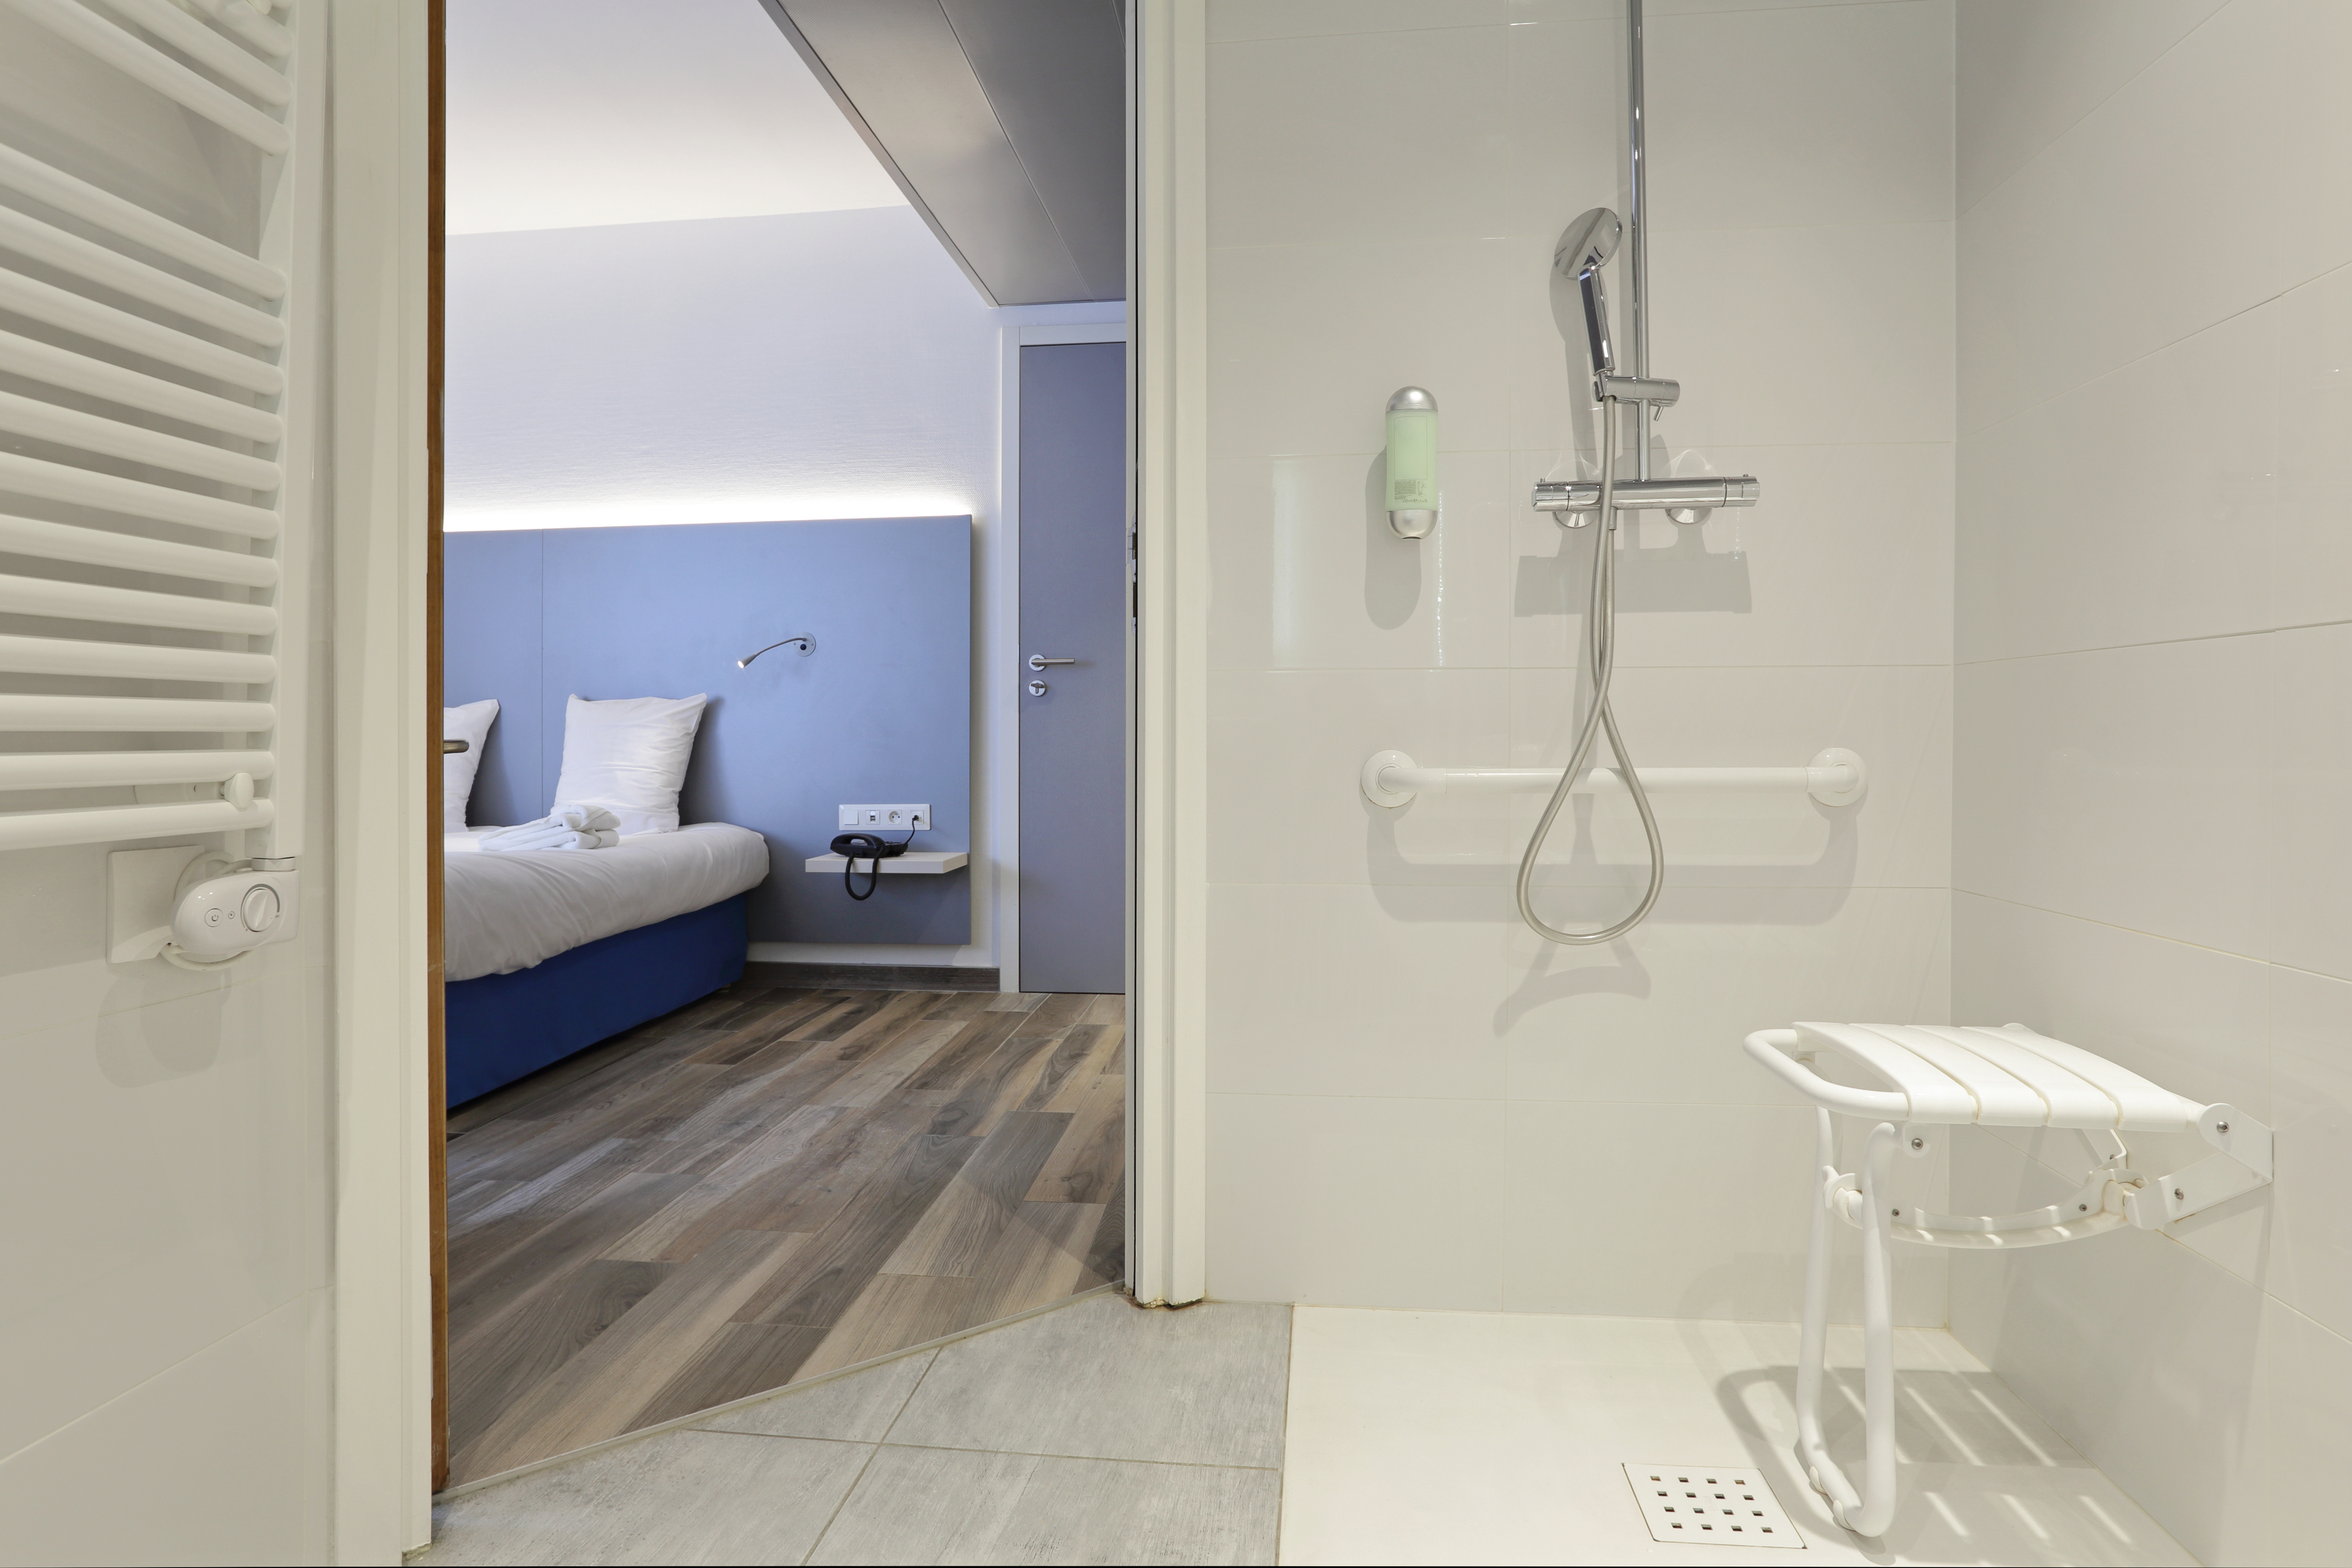 A picture of a bathroom with an accessible bathtub. The open bathroom door gives a view of a bedroom.